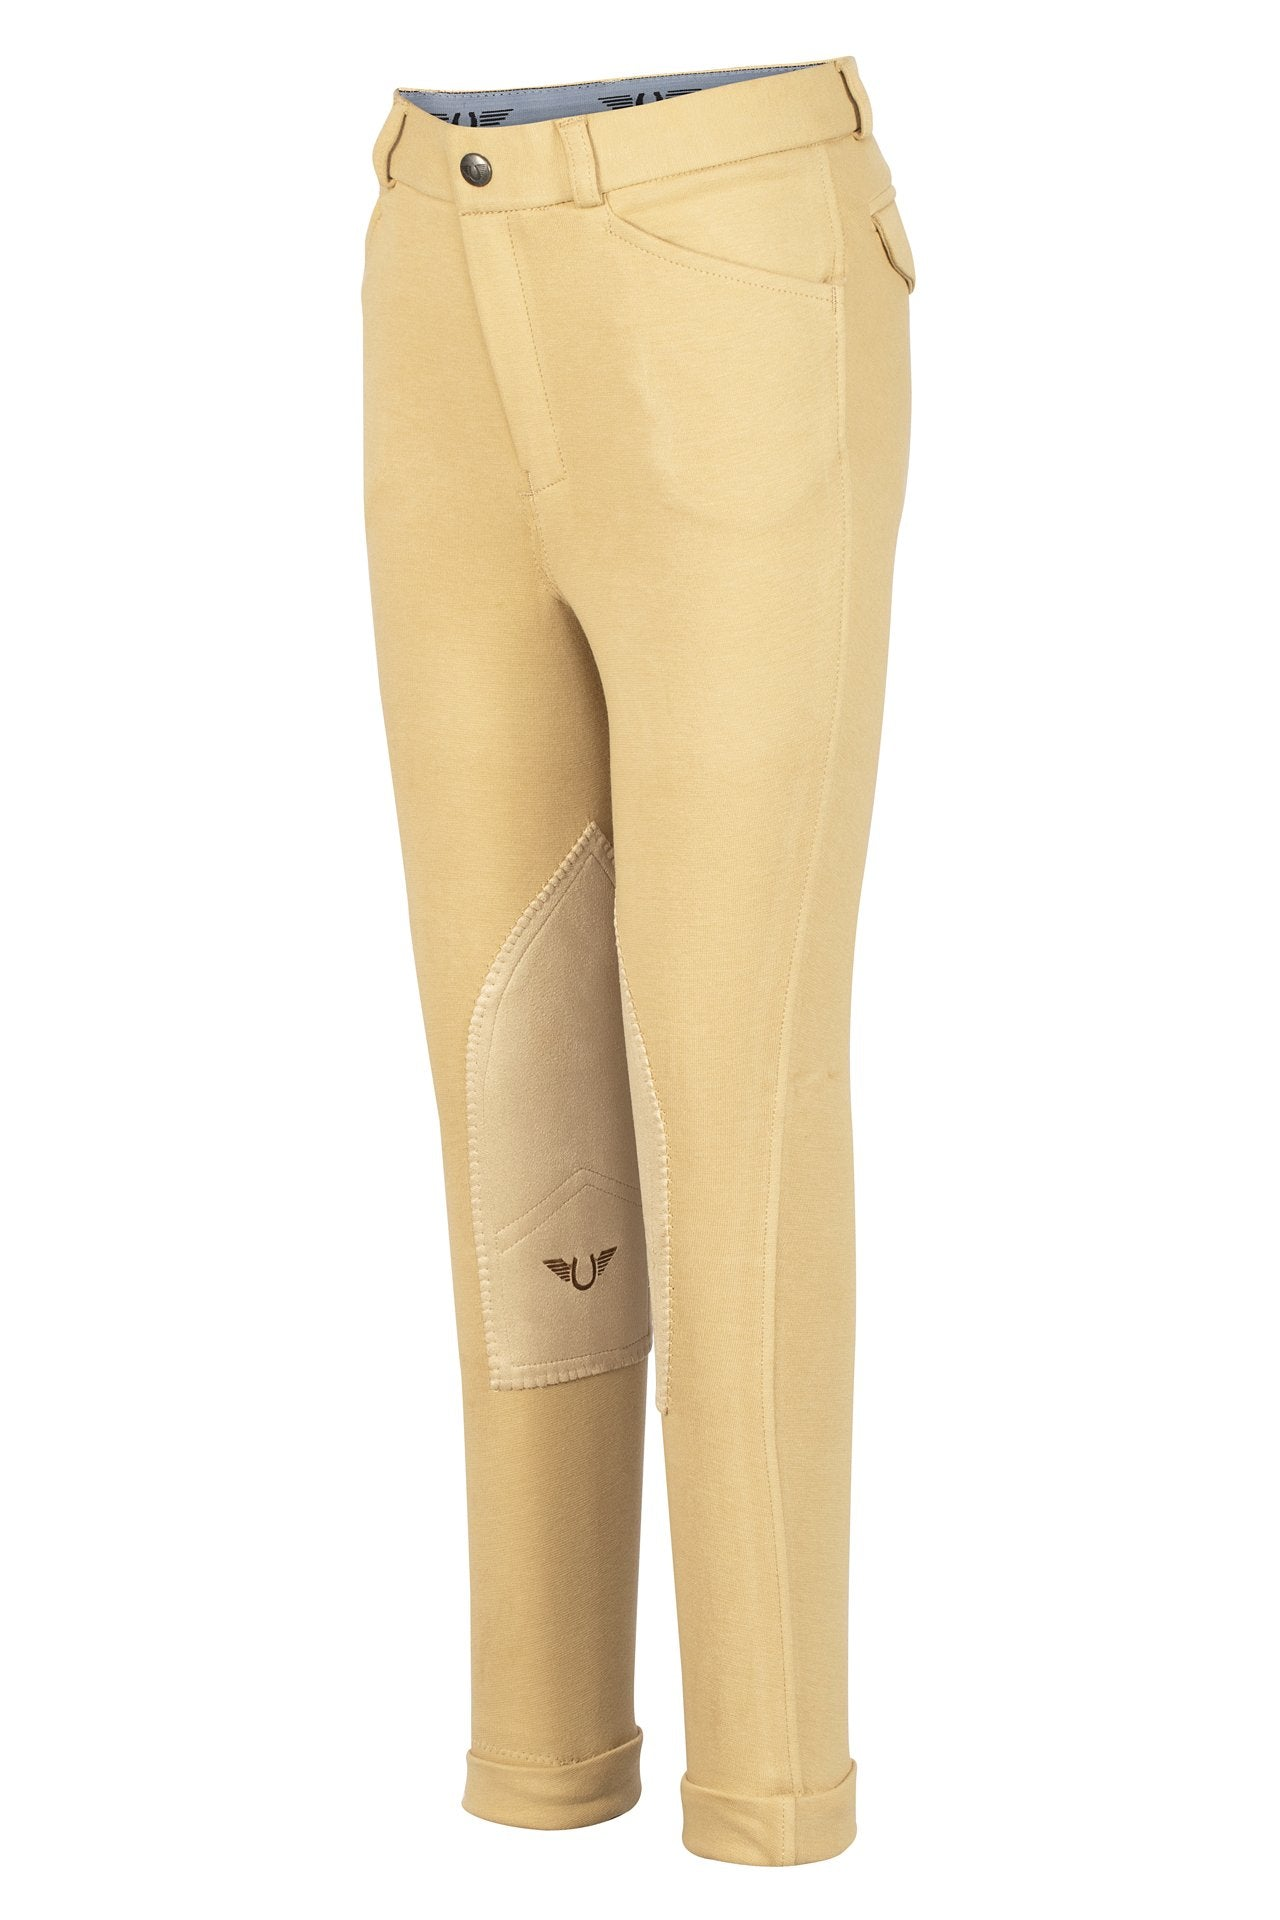 Boys Patrol Light Jodhpurs - TuffRider - Breeches.com